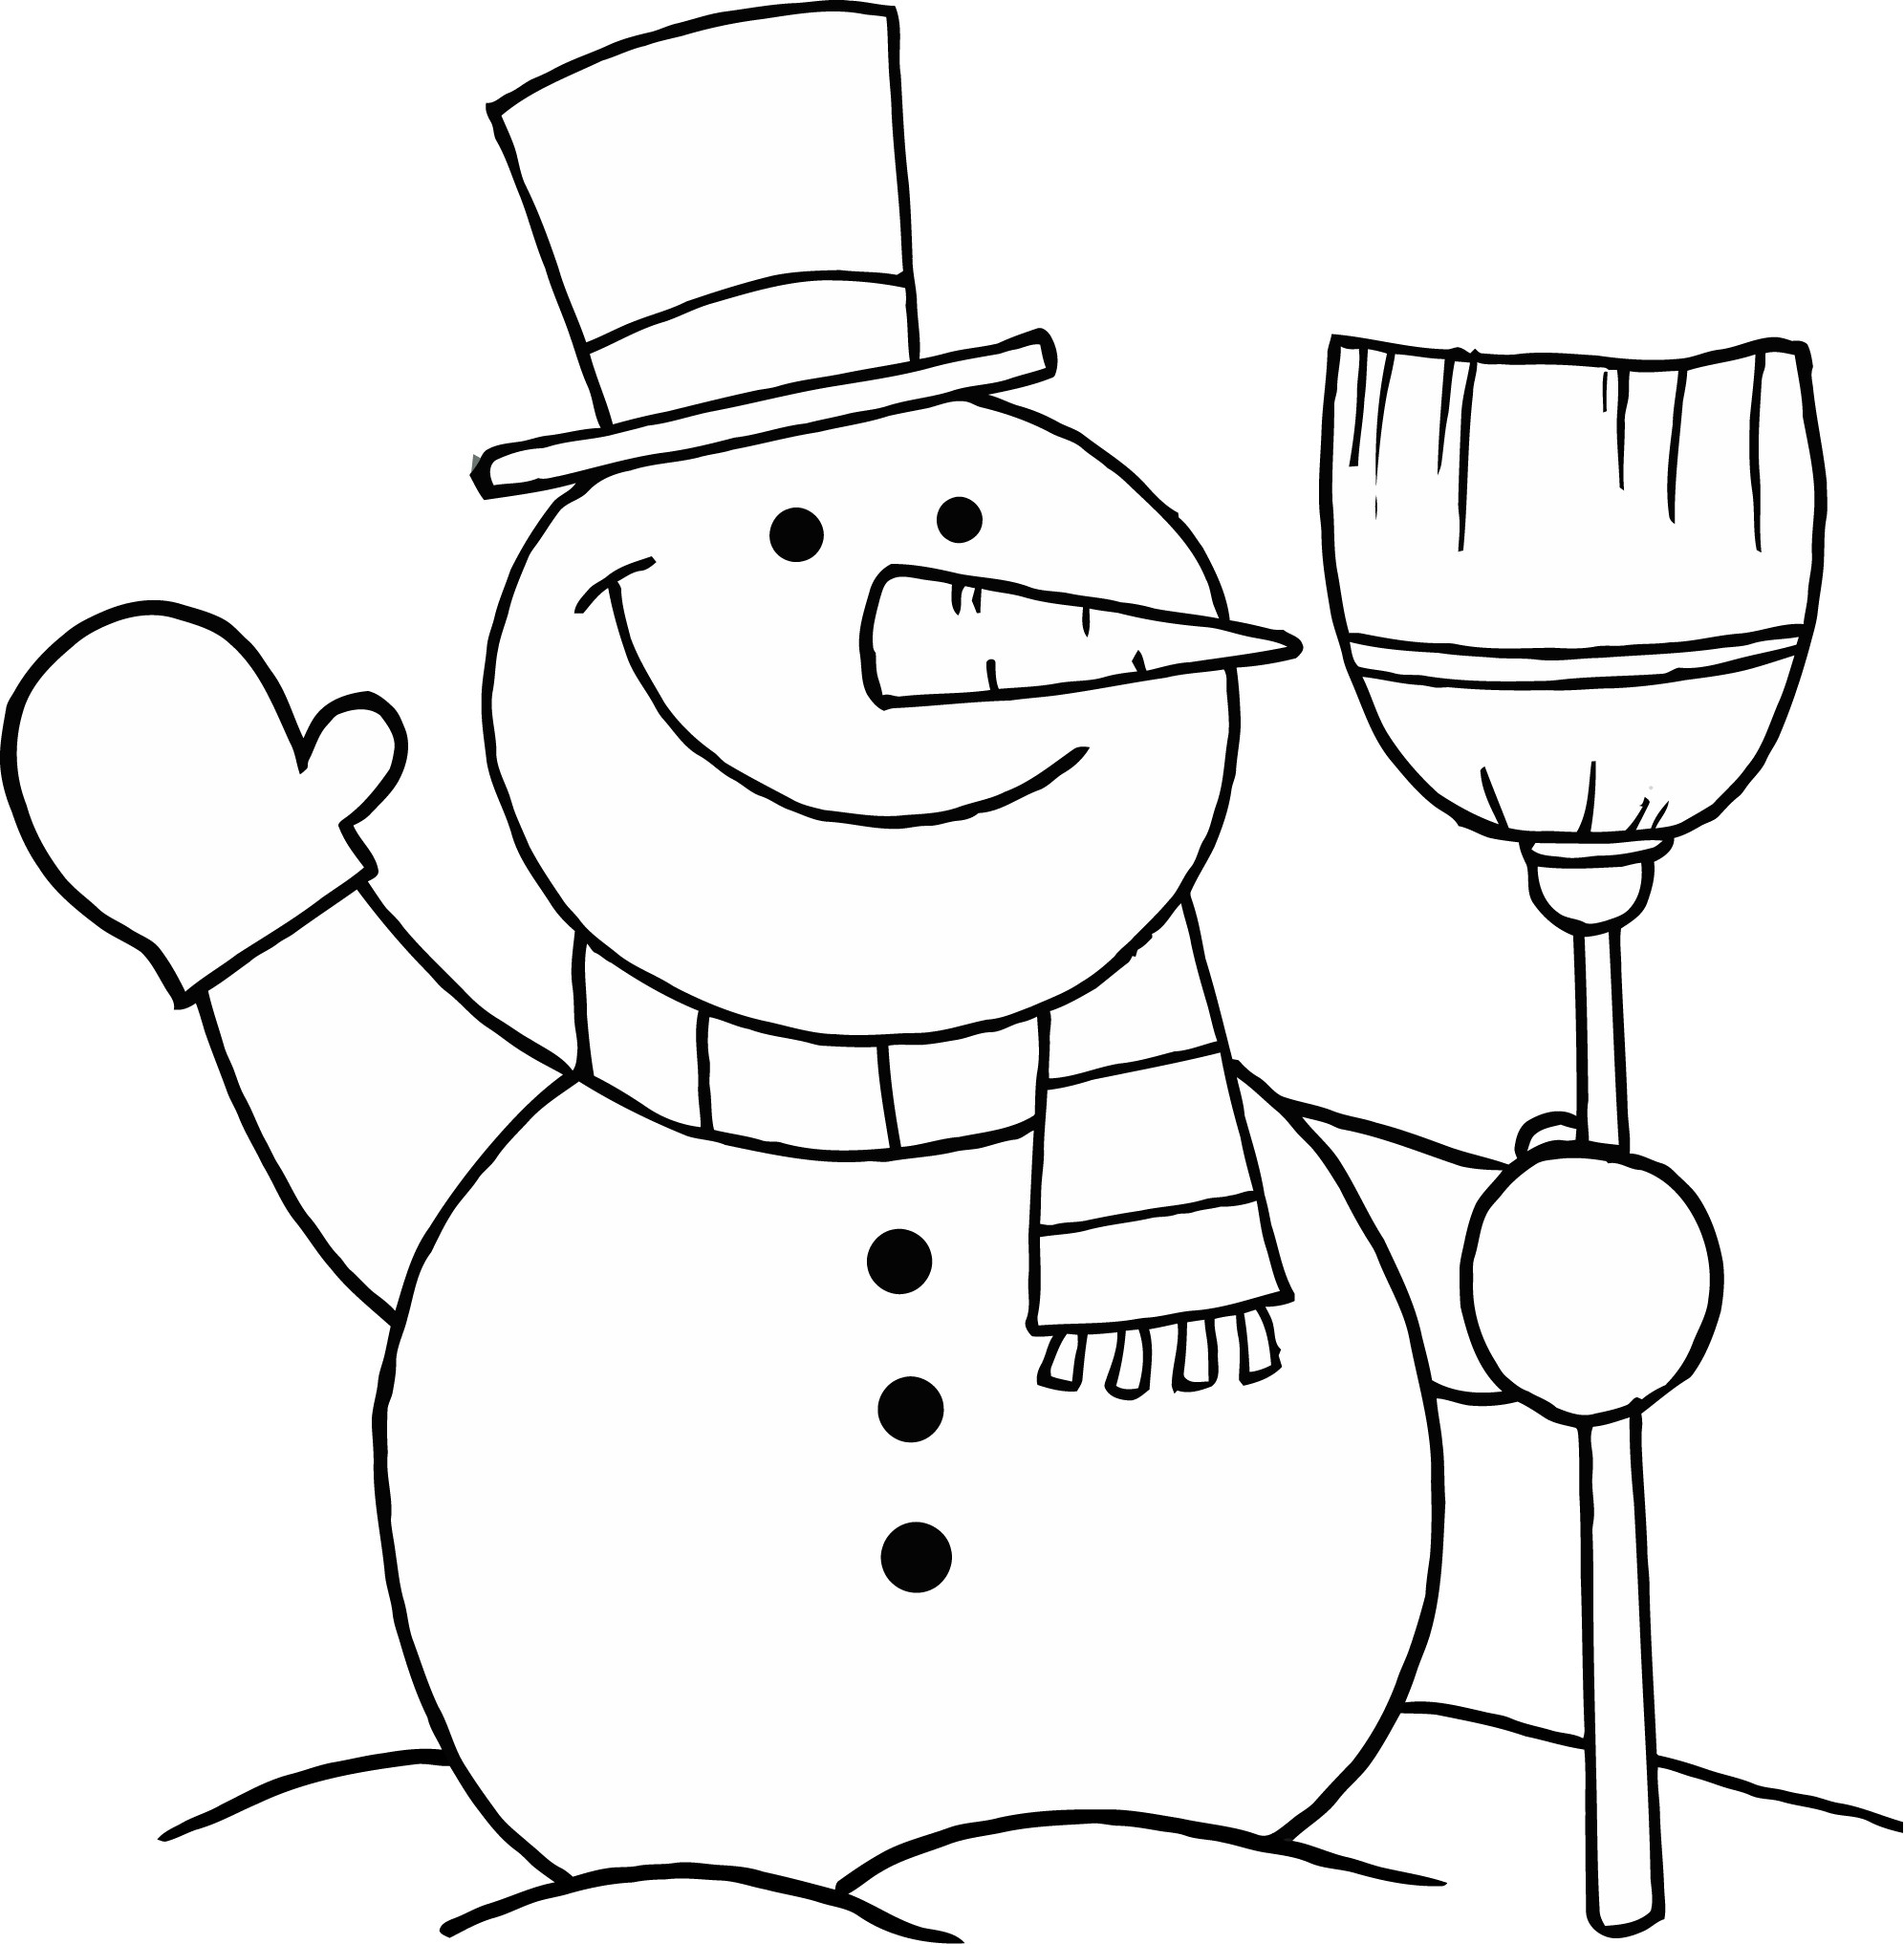 Santa Snowman Coloring Pages With Cute Christmas Collection Free Books